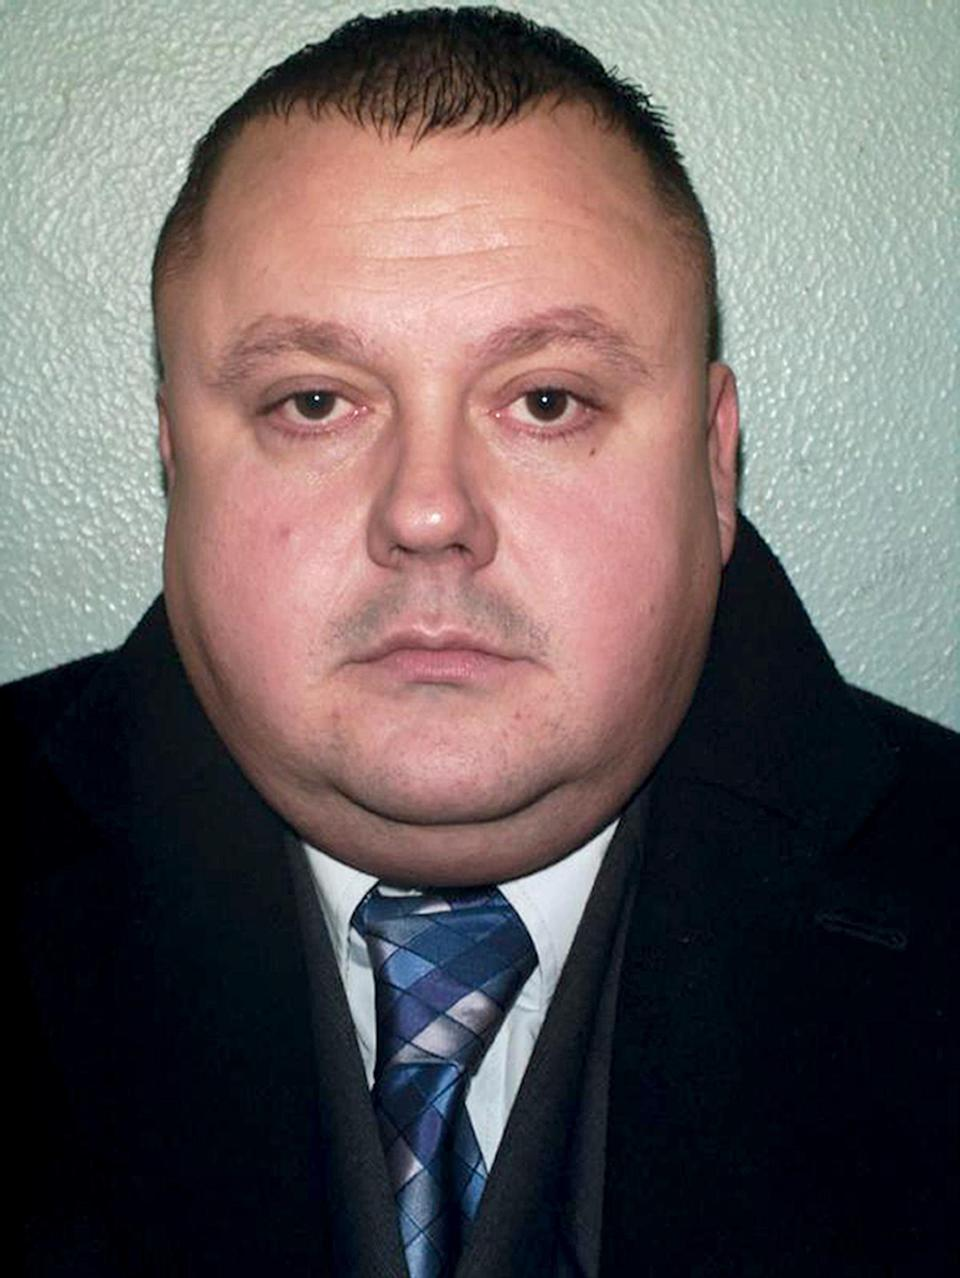 Metropolitan Police undated handout photo of Levi Bellfield who was found guilty at the Old Bailey today of the murder of two young women.